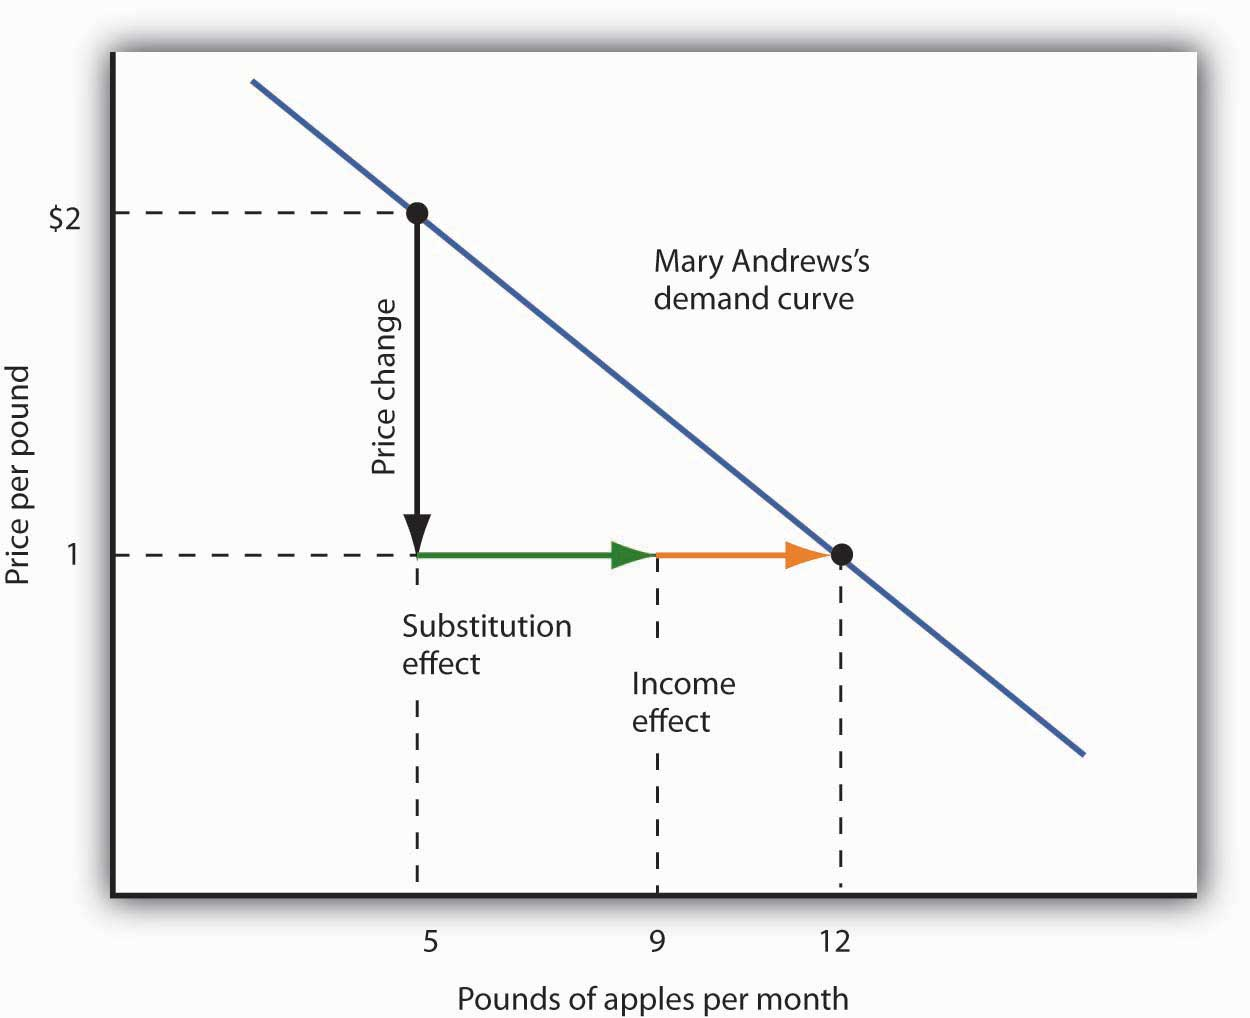 Utility maximization and the demand curve